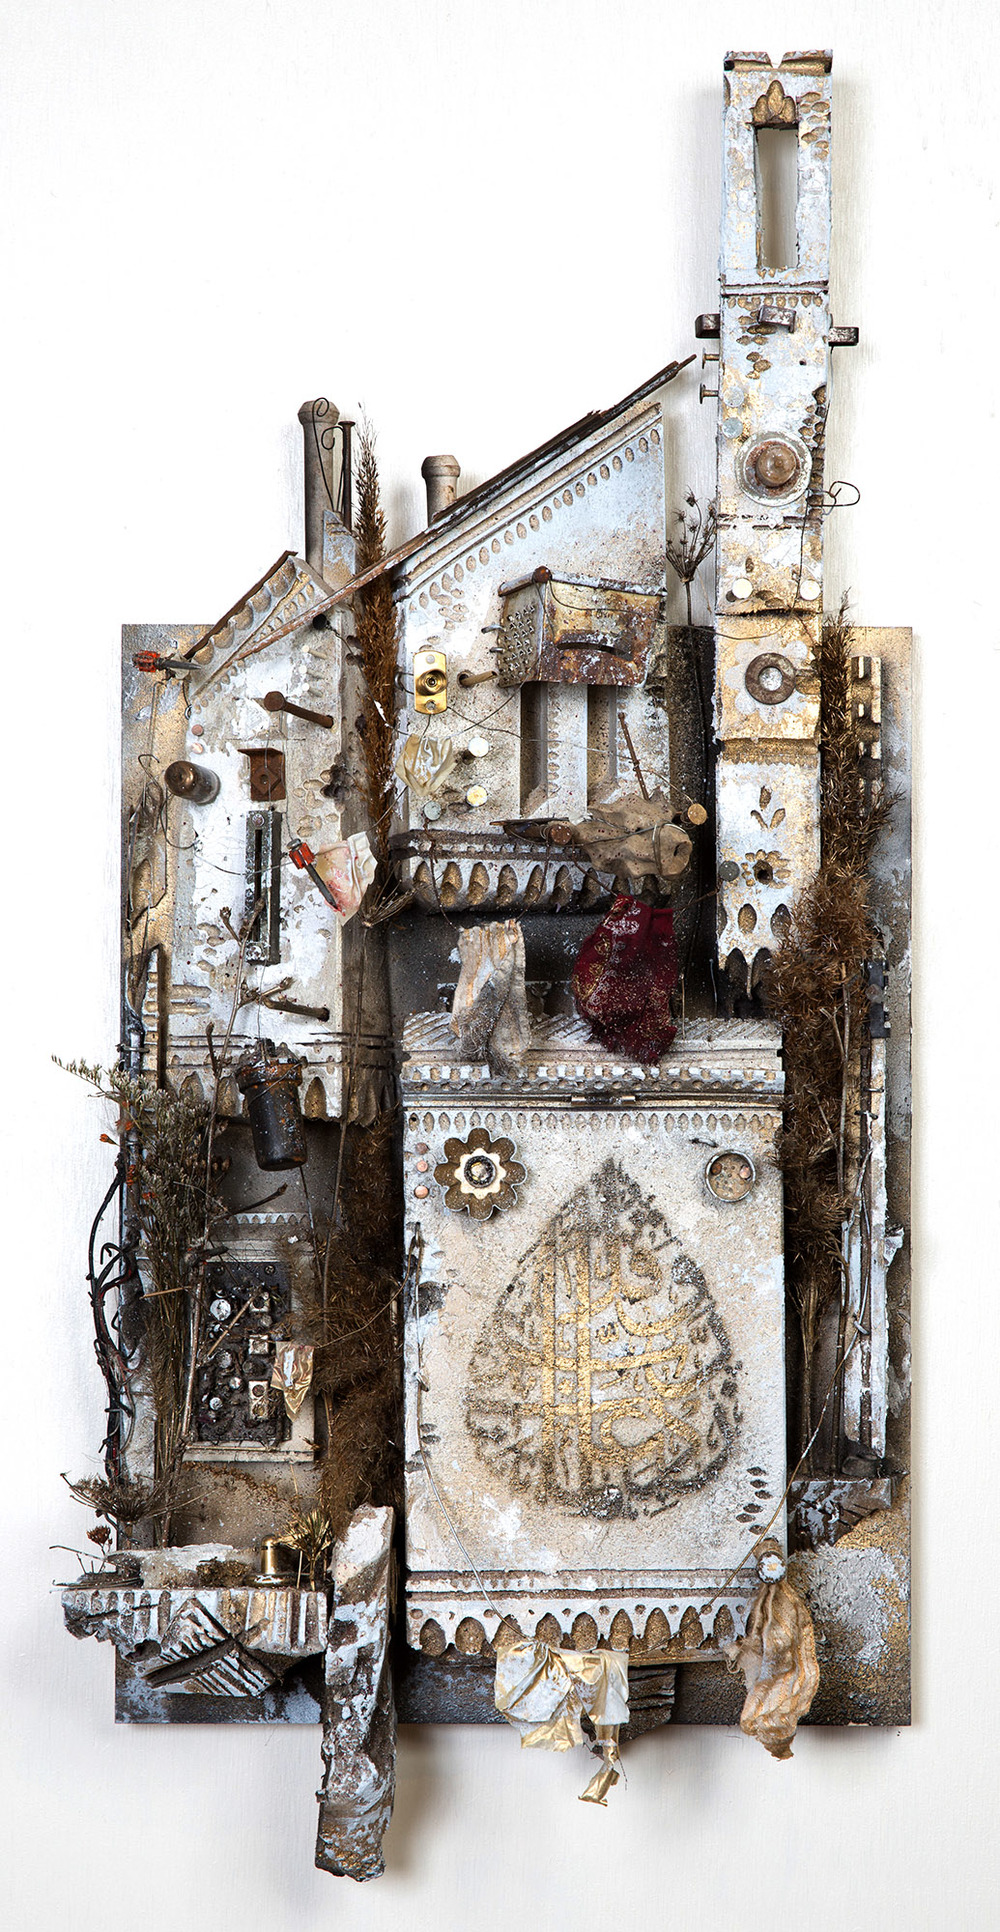 Mohamad Hafez,  Oh My God, Increase My Knowledge , 2016    Plaster, Rigid Foam, Paint, Rusted Metal, Fabric, Found Objects    36 x 15 x 6 inches    $3,800